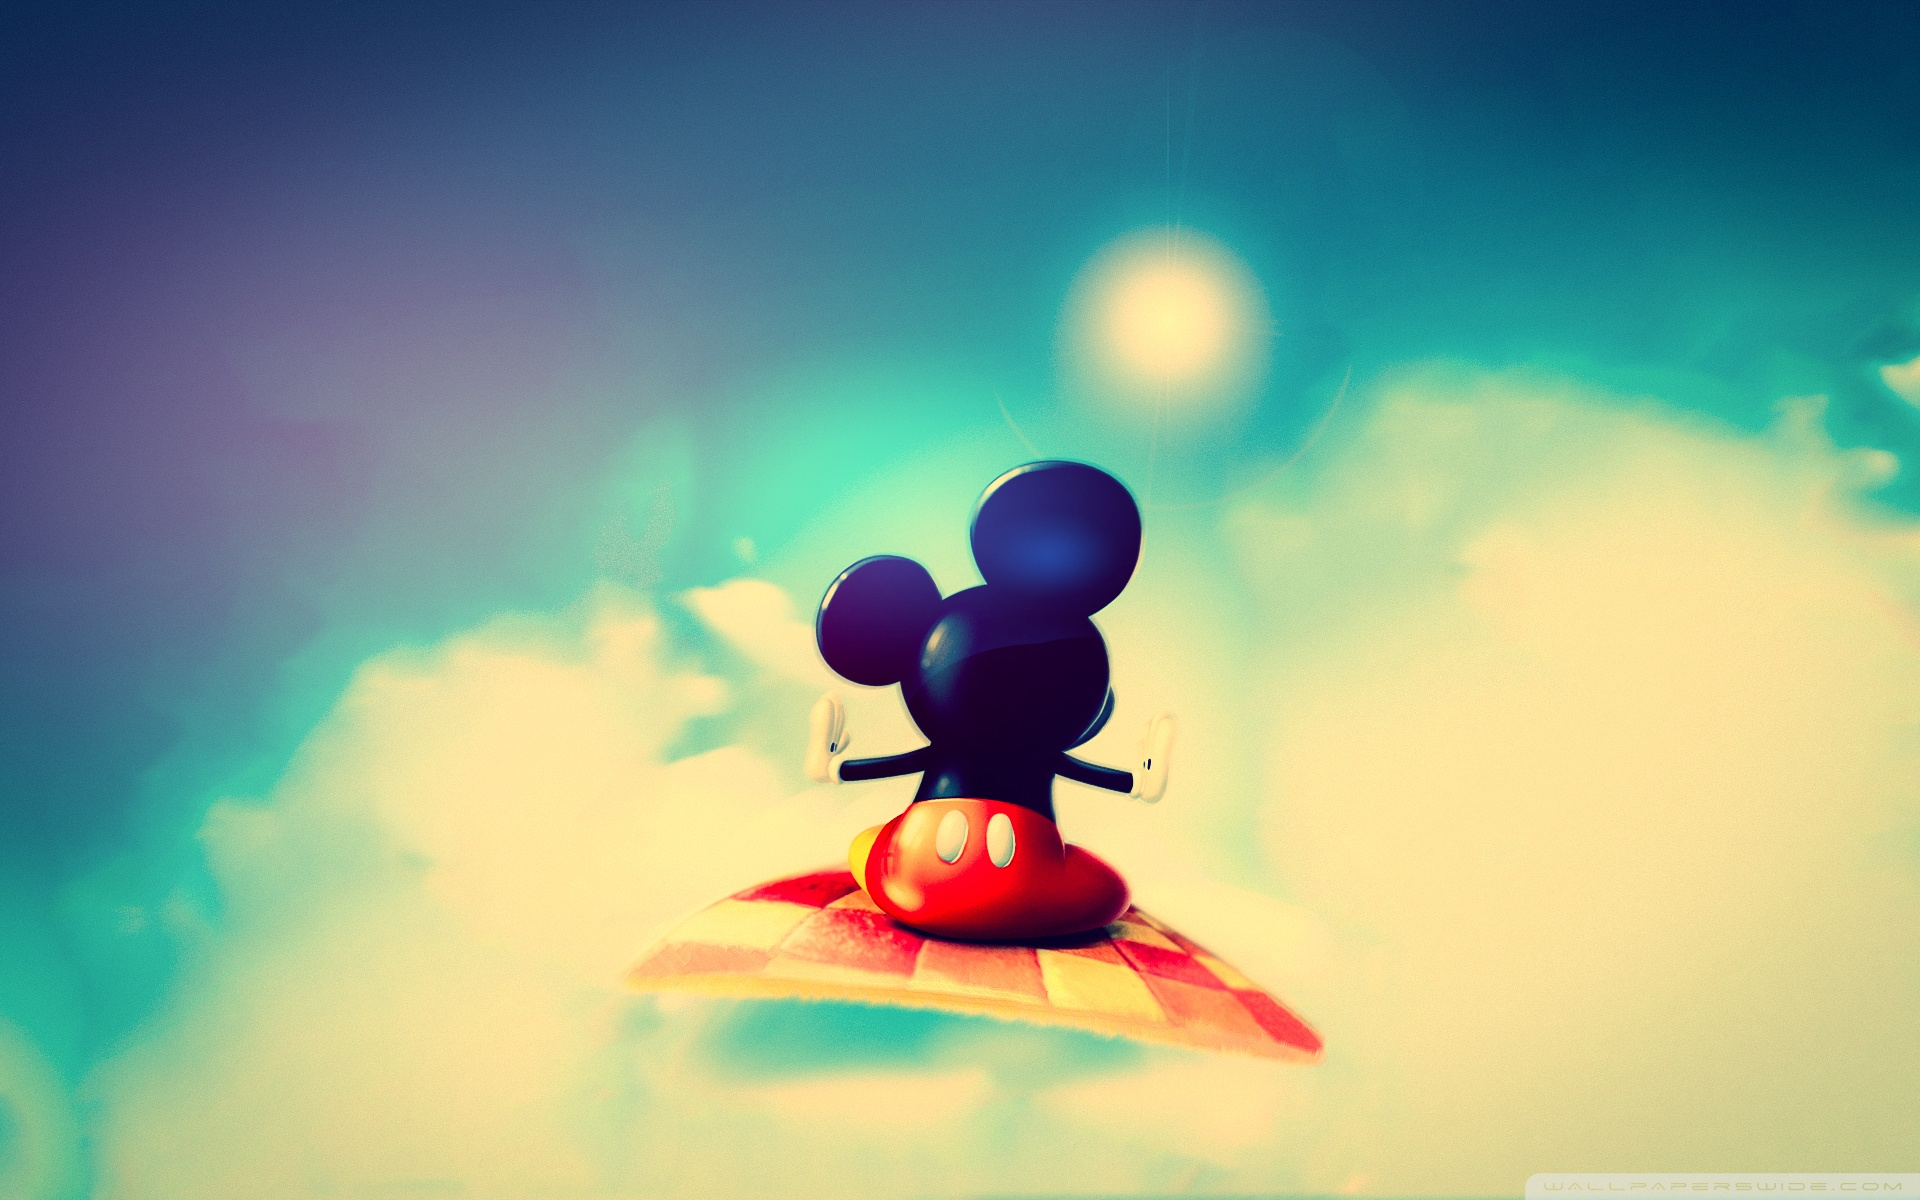 Cute Disney Screensavers wallpaper 1920x1200 82872 1920x1200